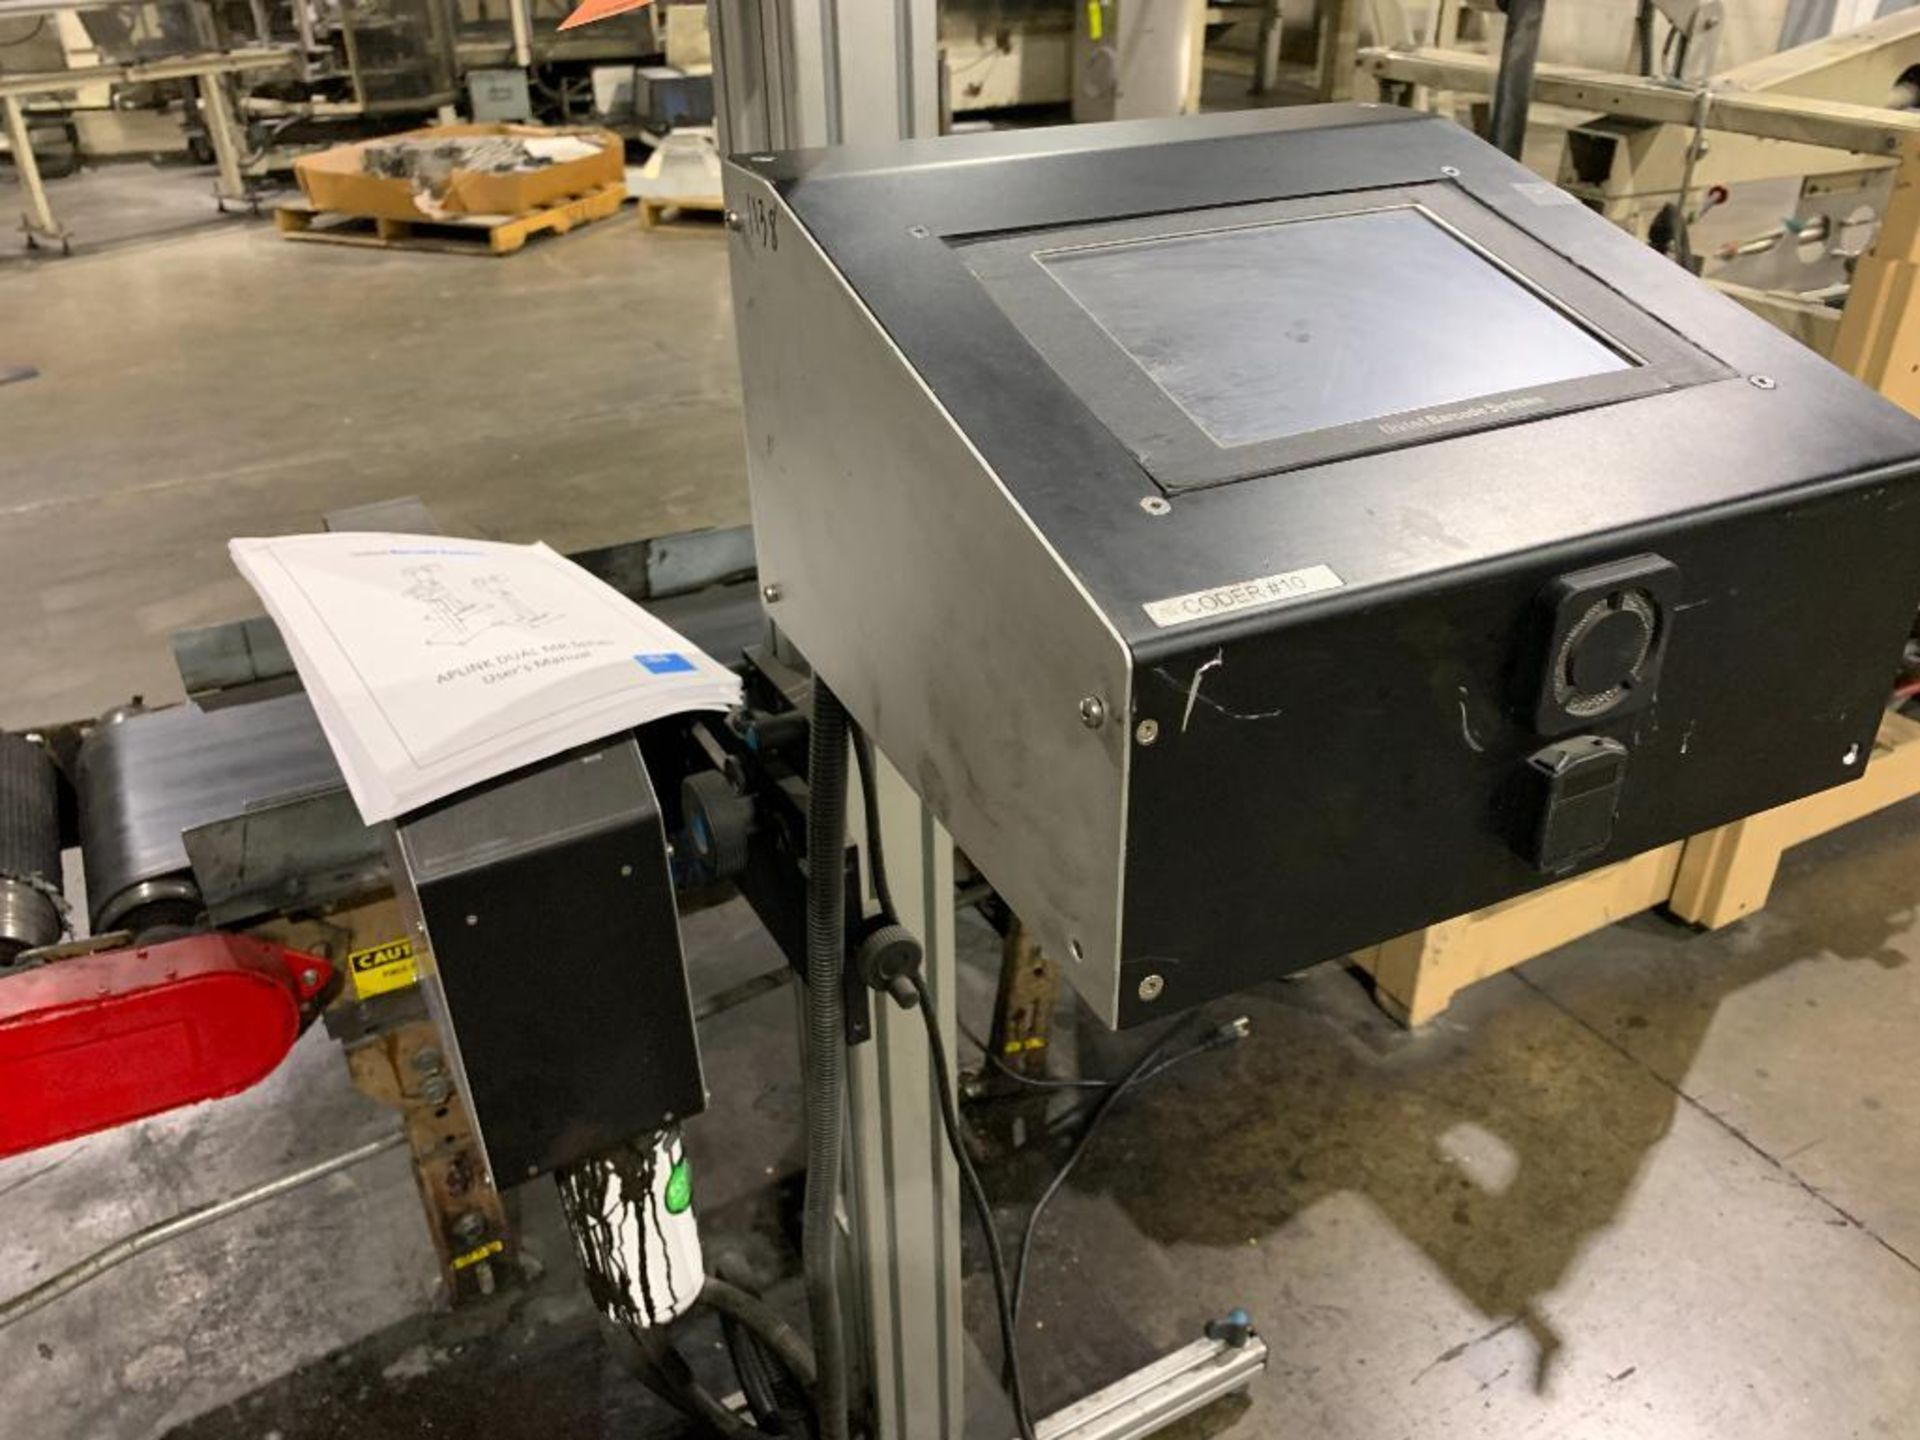 Automatic Printing Systems case coder - Image 2 of 13